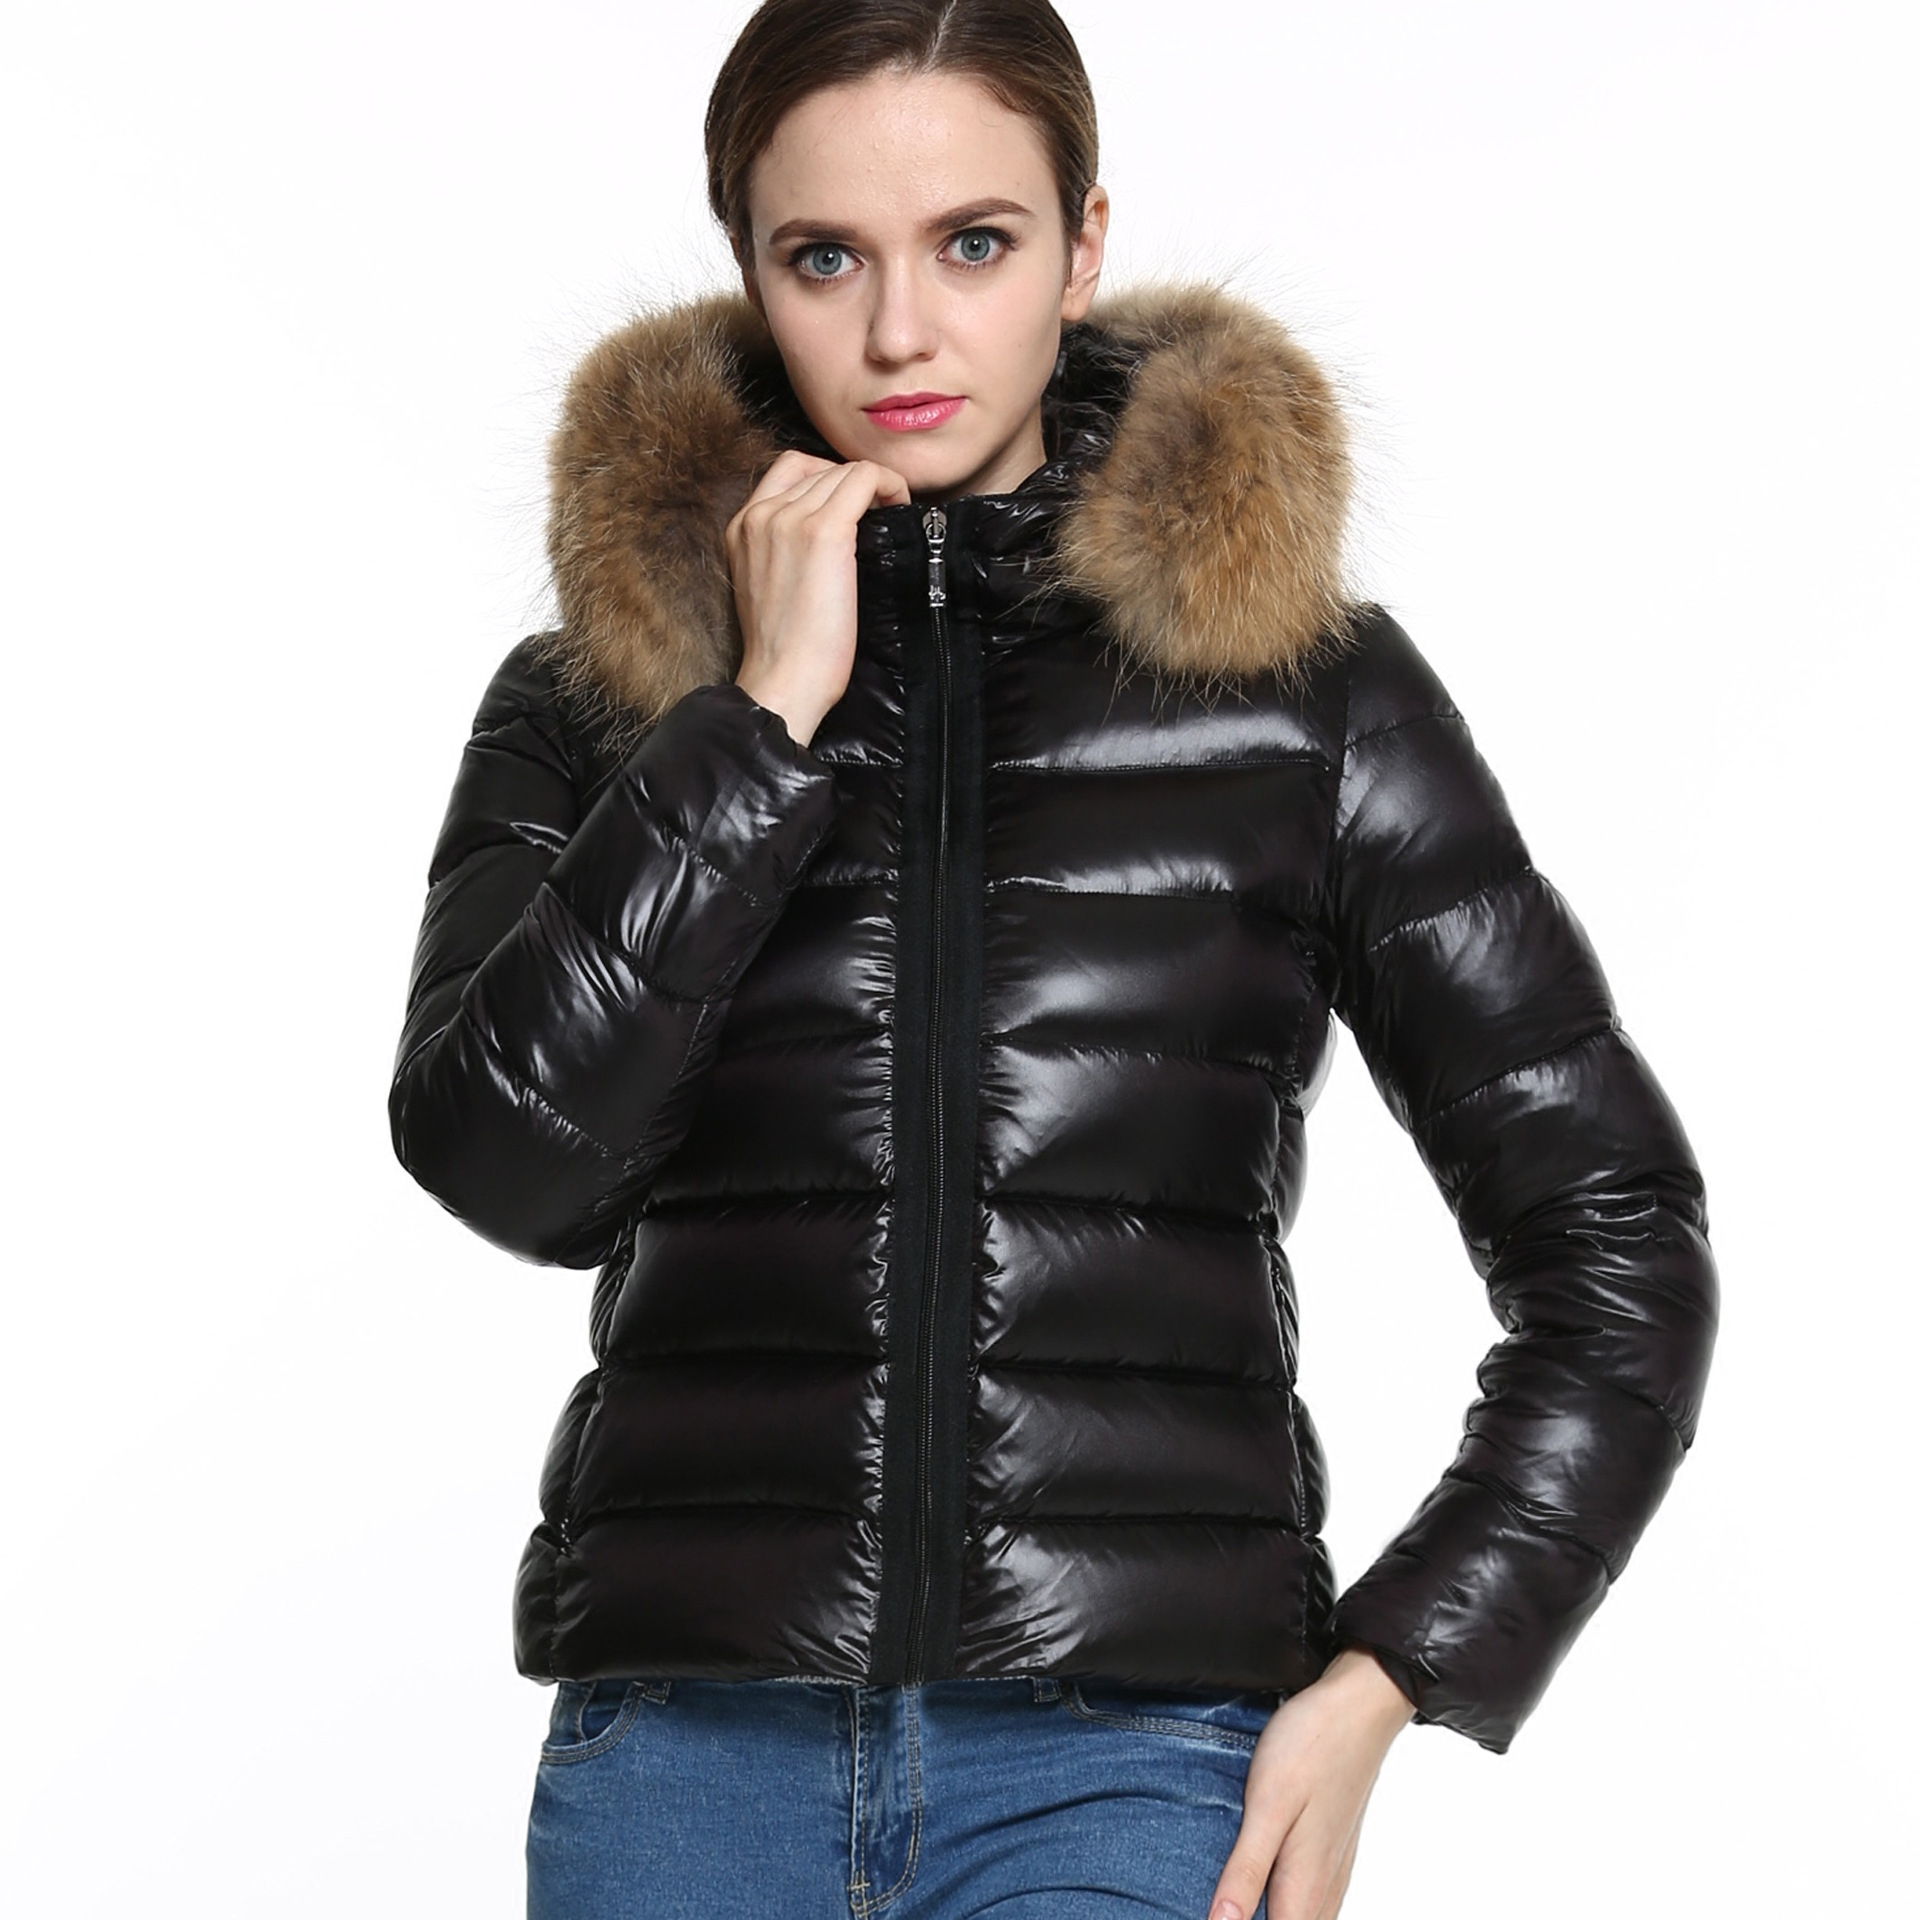 2016 Rushed Ukraine Winter New Listing Of Cotton-loving Hot-selling Womens Cotton-padded Warmth Of Thick Cotton Collar Women Одежда и ак�е��уары<br><br><br>Aliexpress